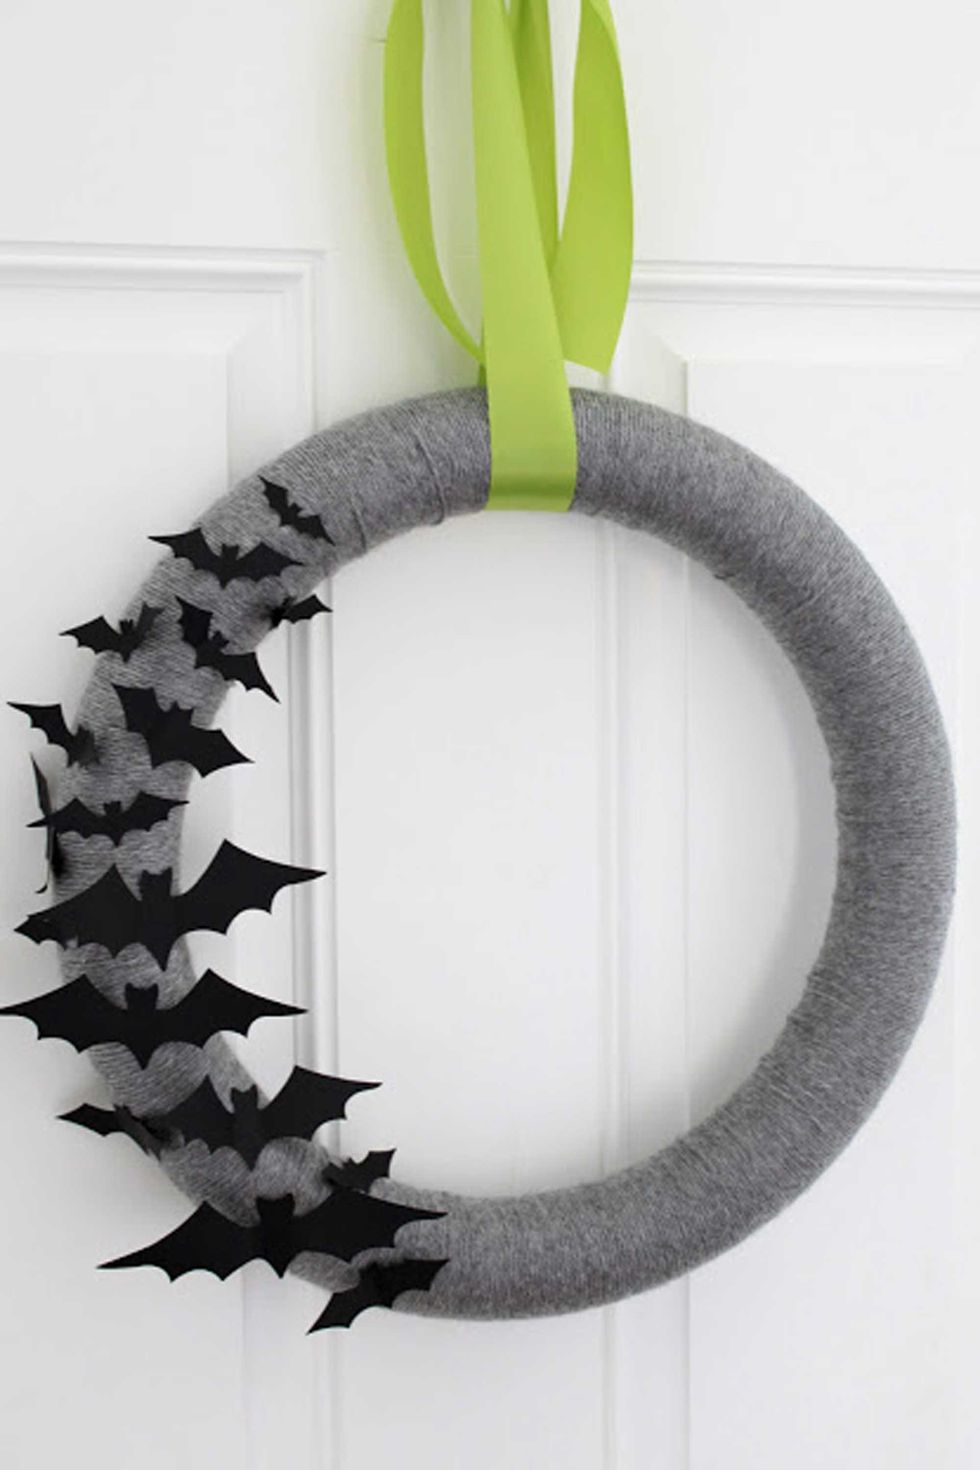 13 Halloween Gray Yarn Bat Wreath